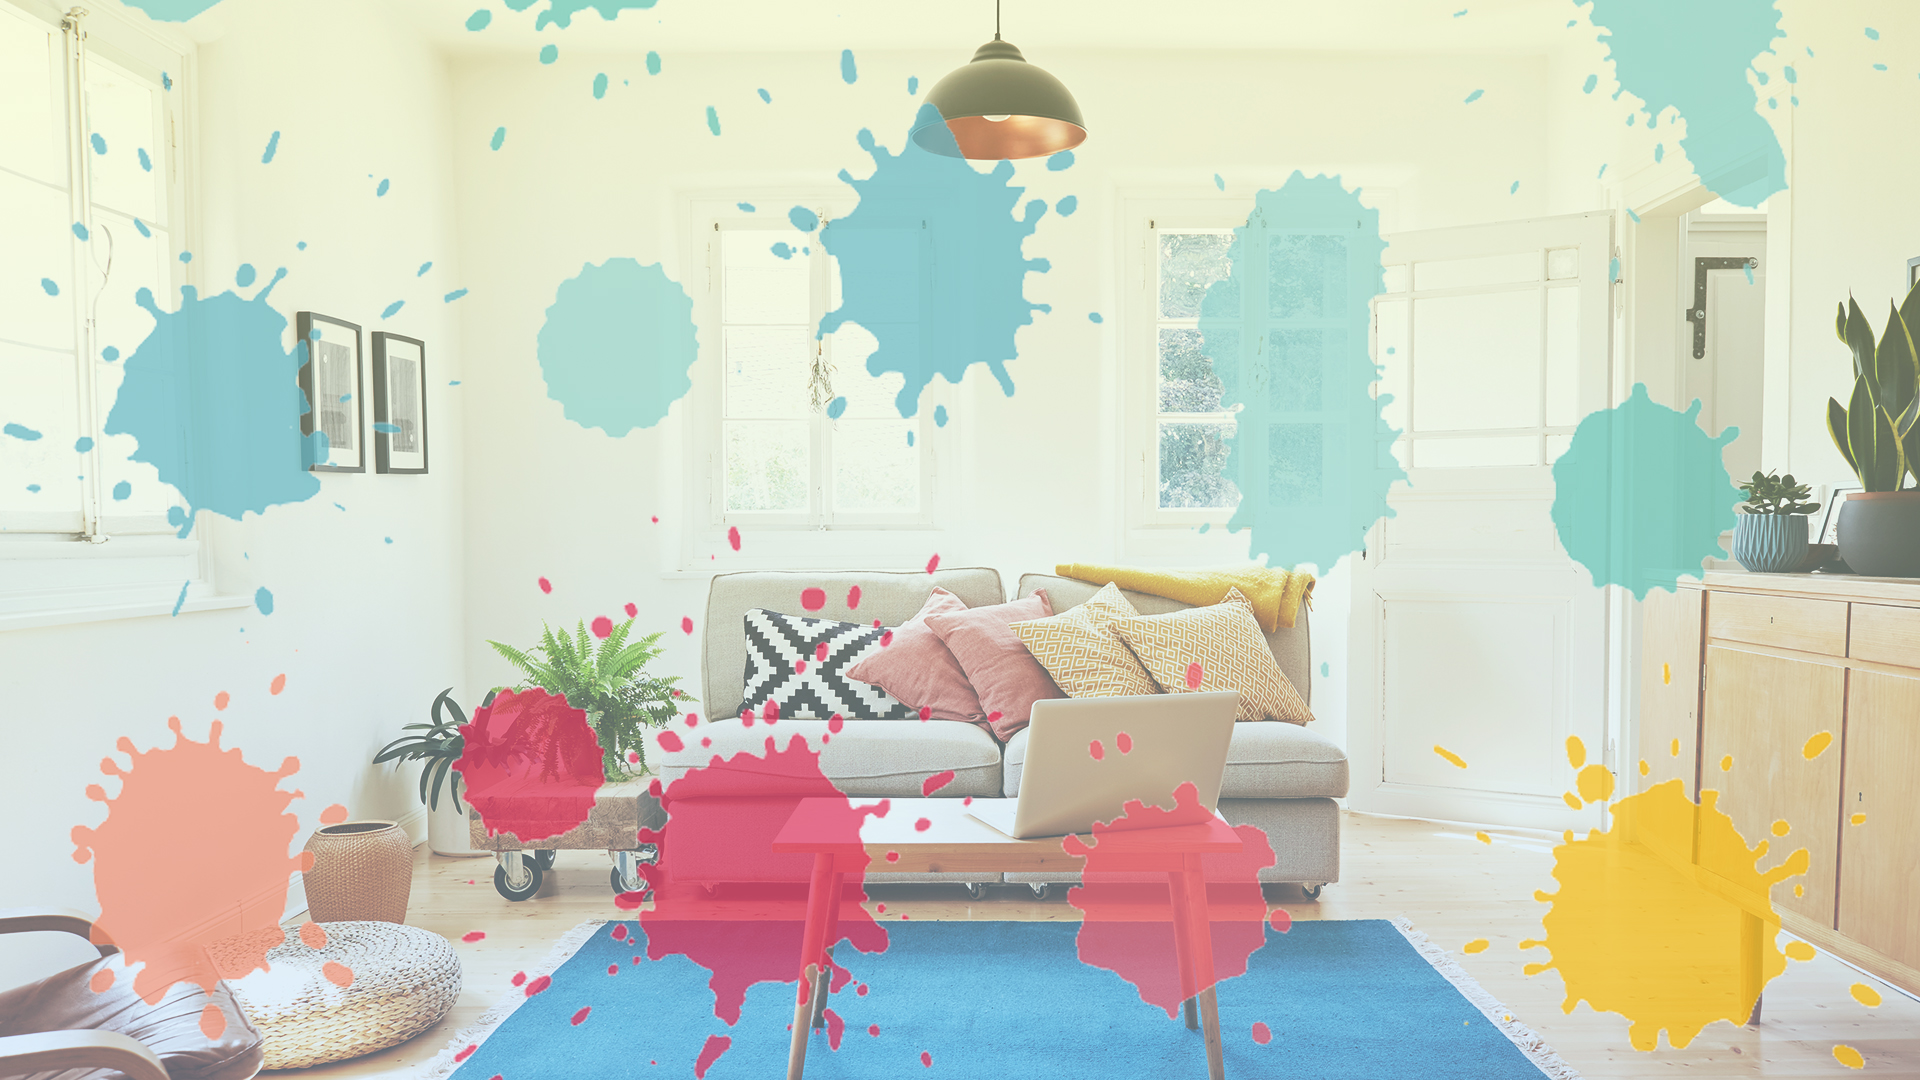 How To Get 6 Types Of Stains Out Your Furniture Sheknows